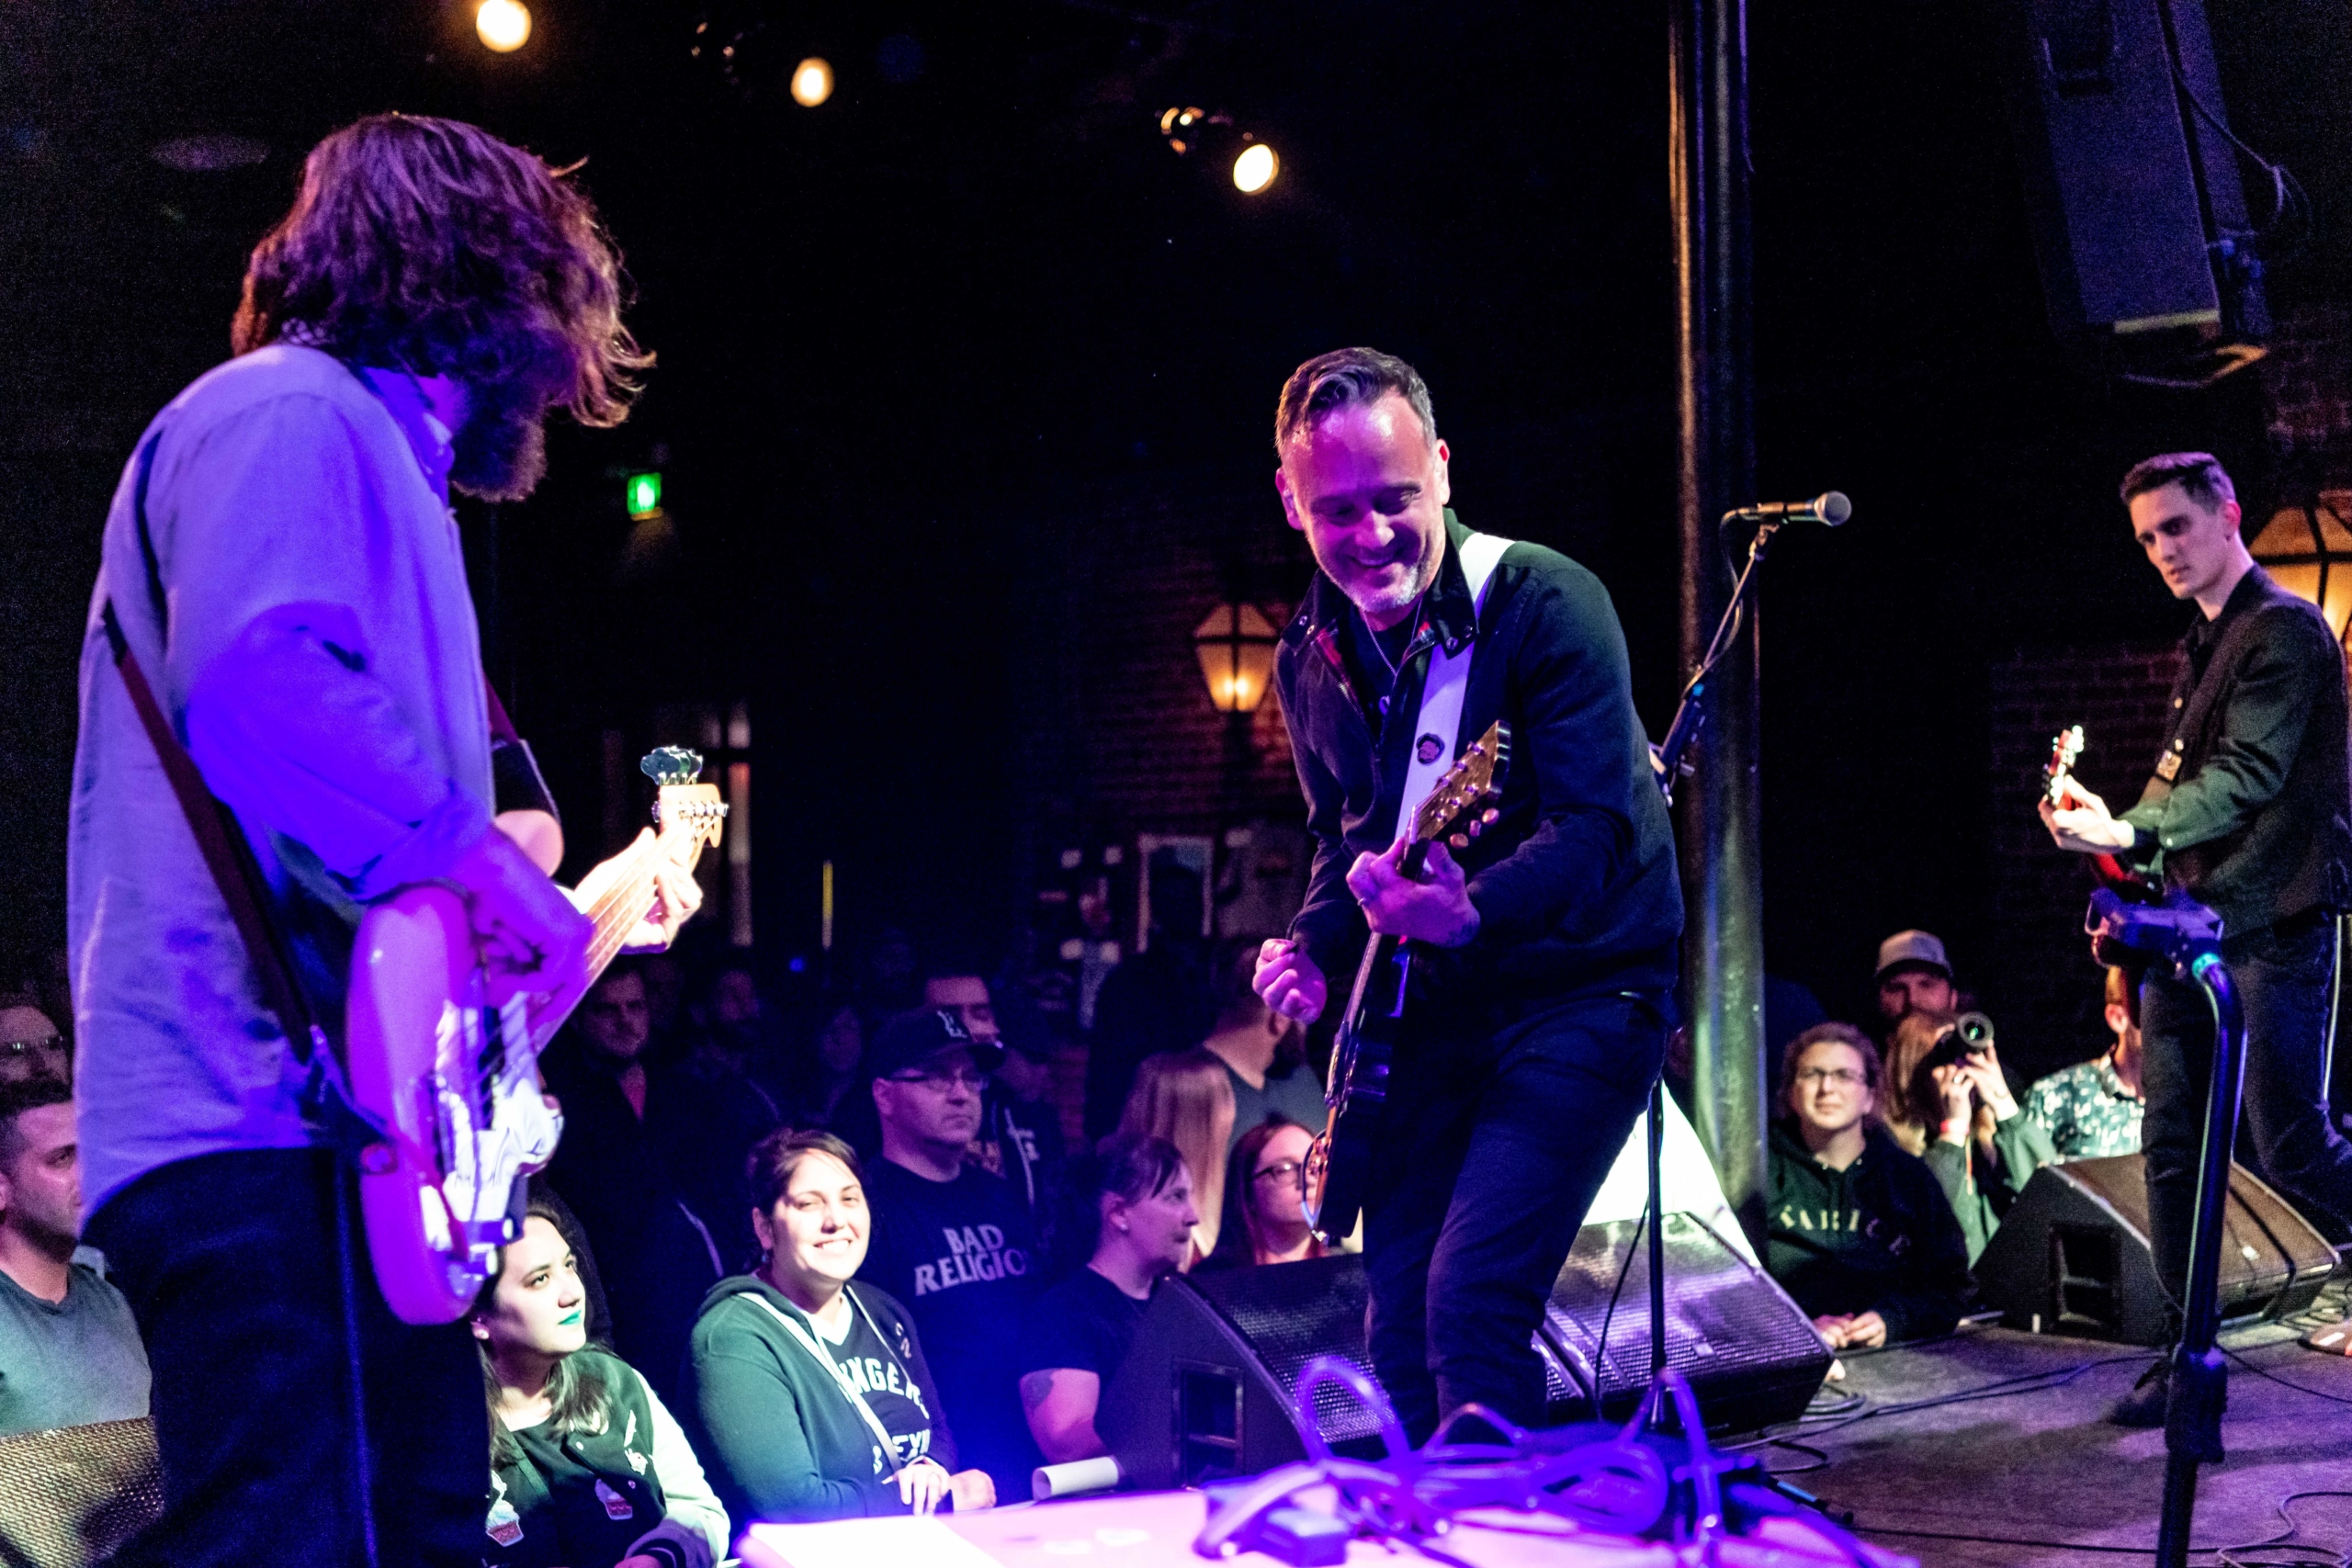 Dave Hause & The Mermaid at Slim's in San Francisco